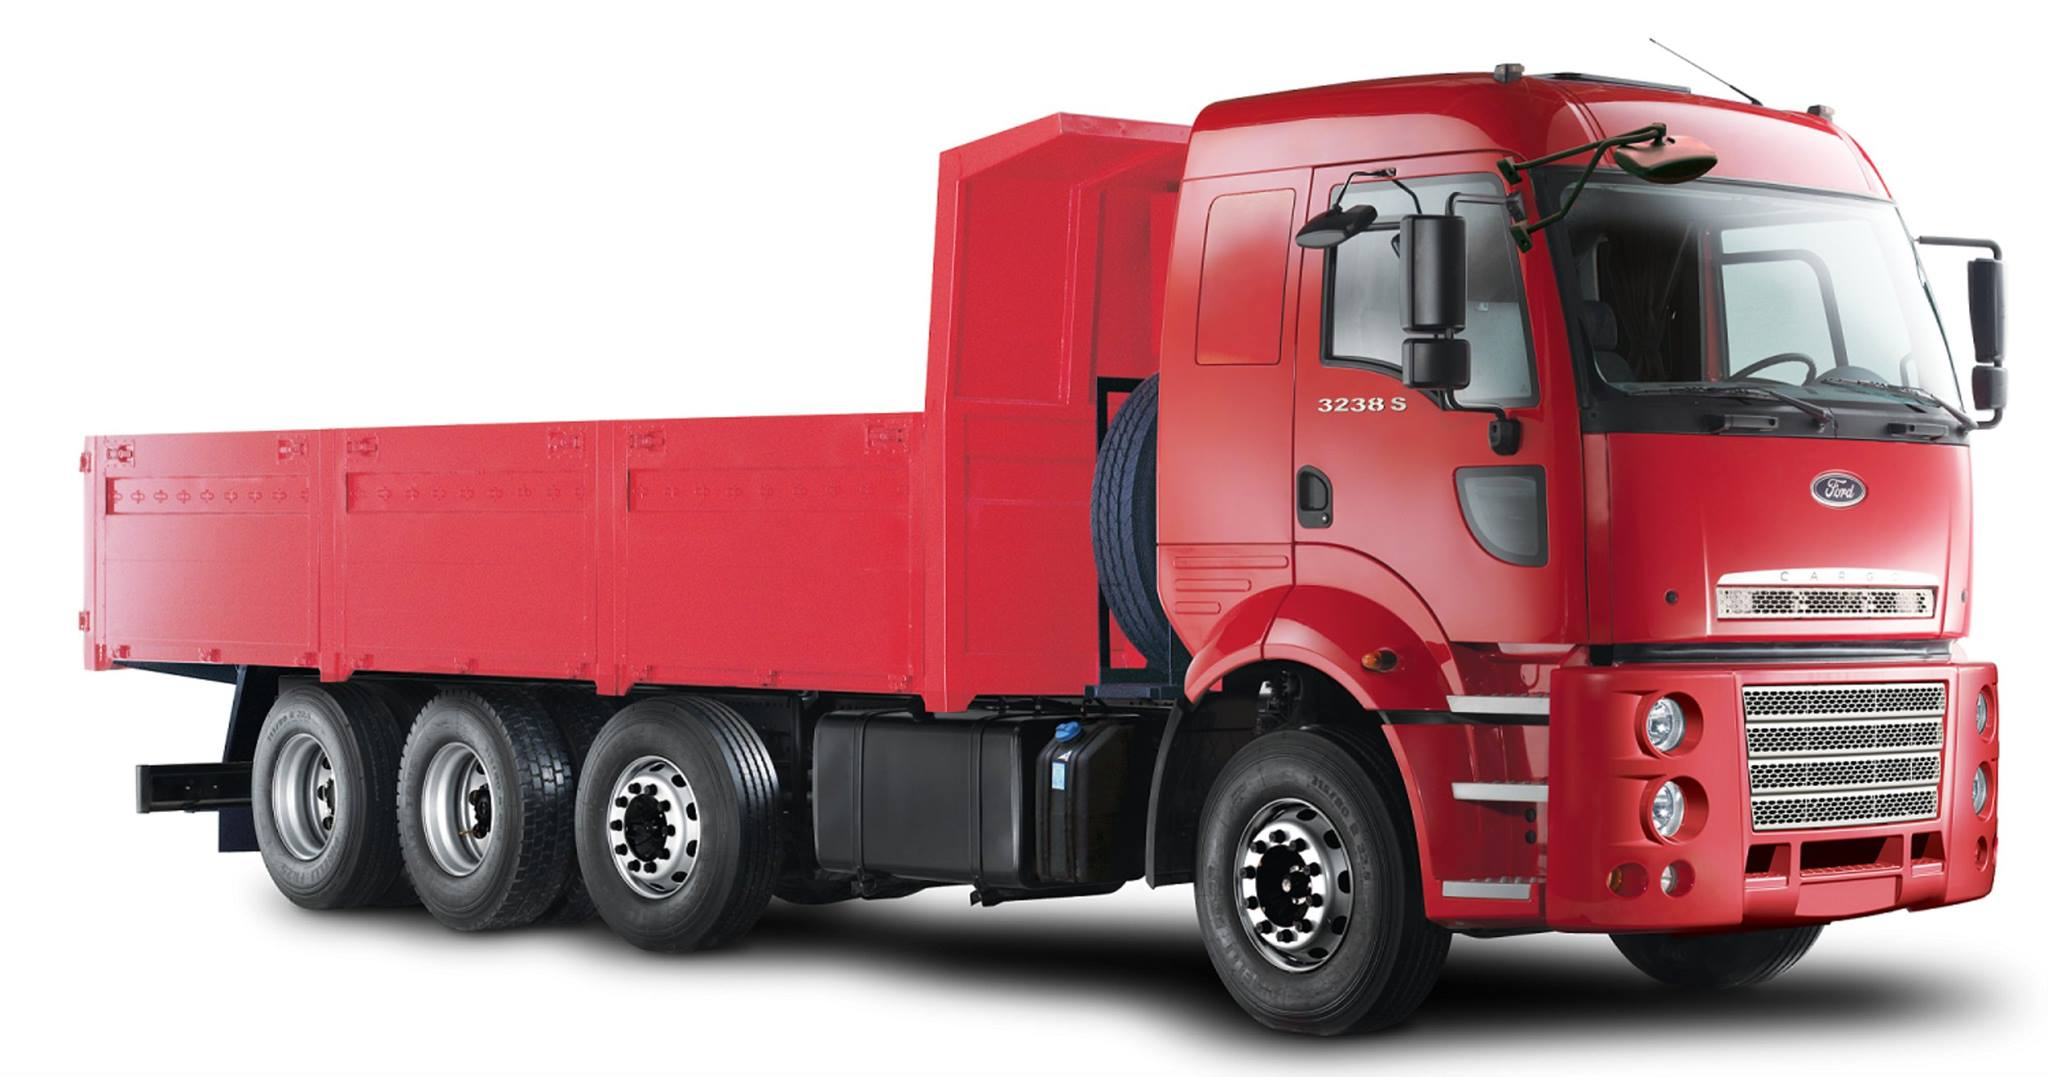 Ford-Cargo-32-38